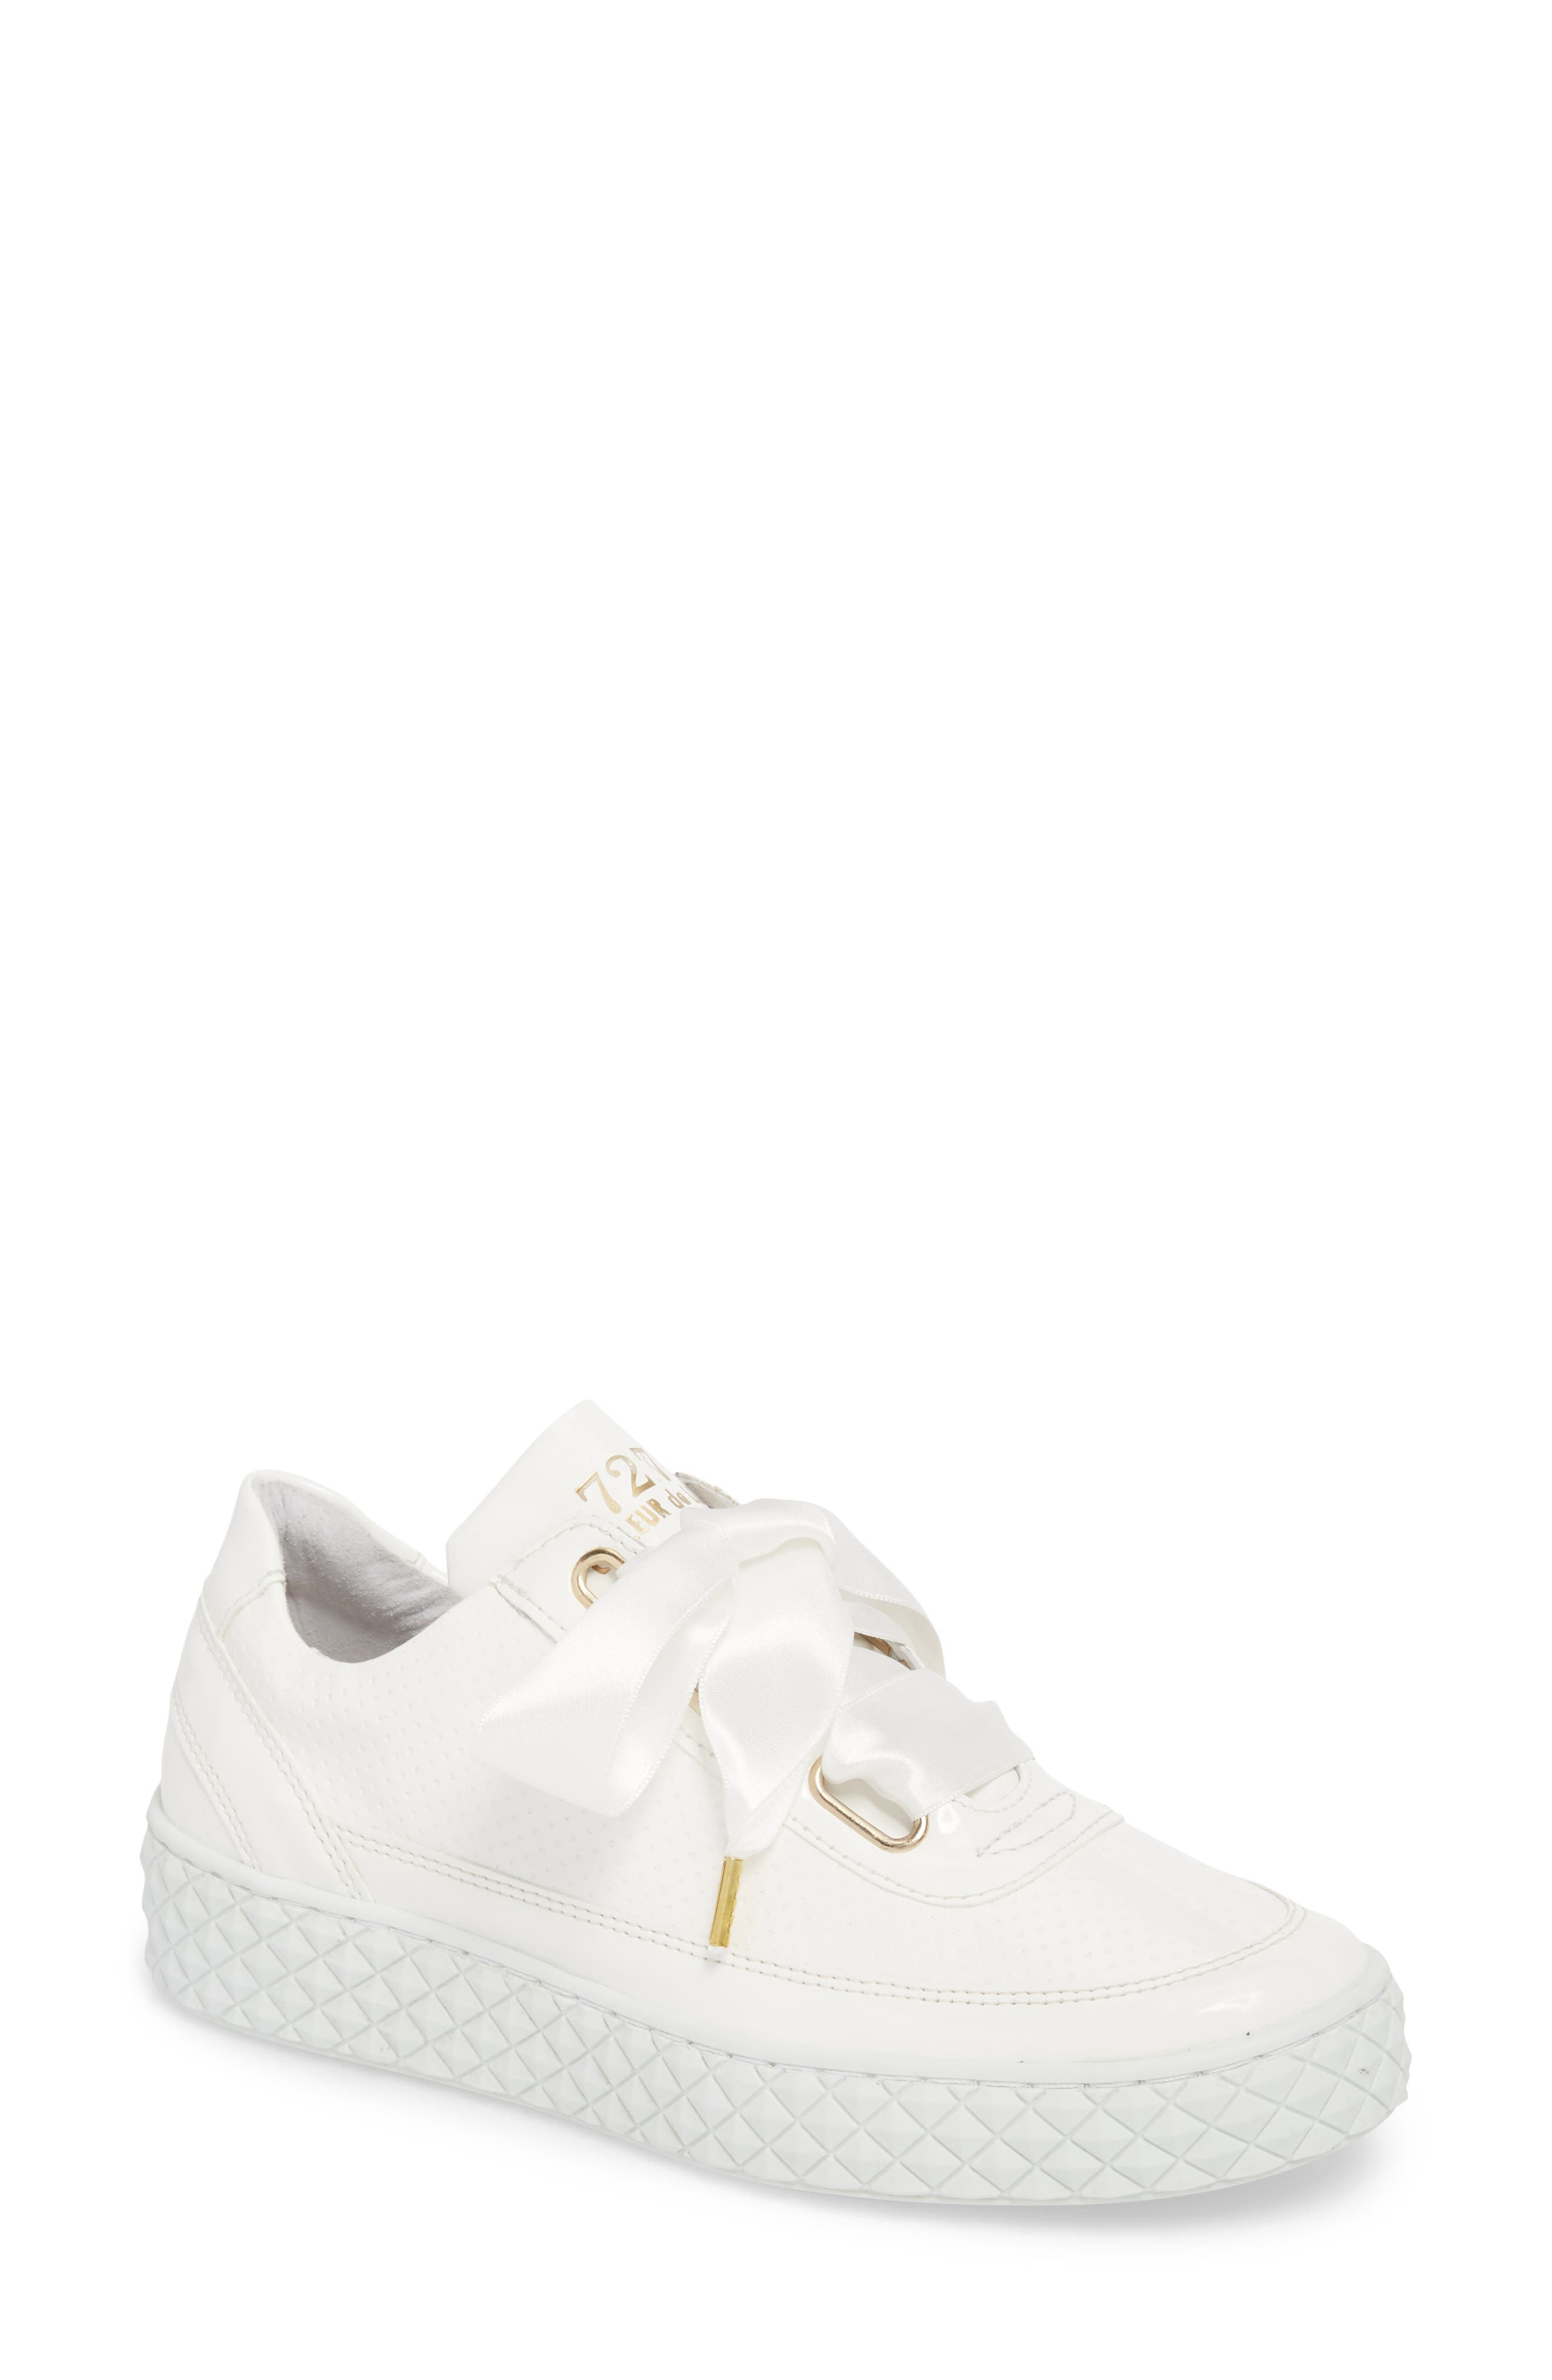 Montreal II Sneaker,                             Main thumbnail 1, color,                             White Leather